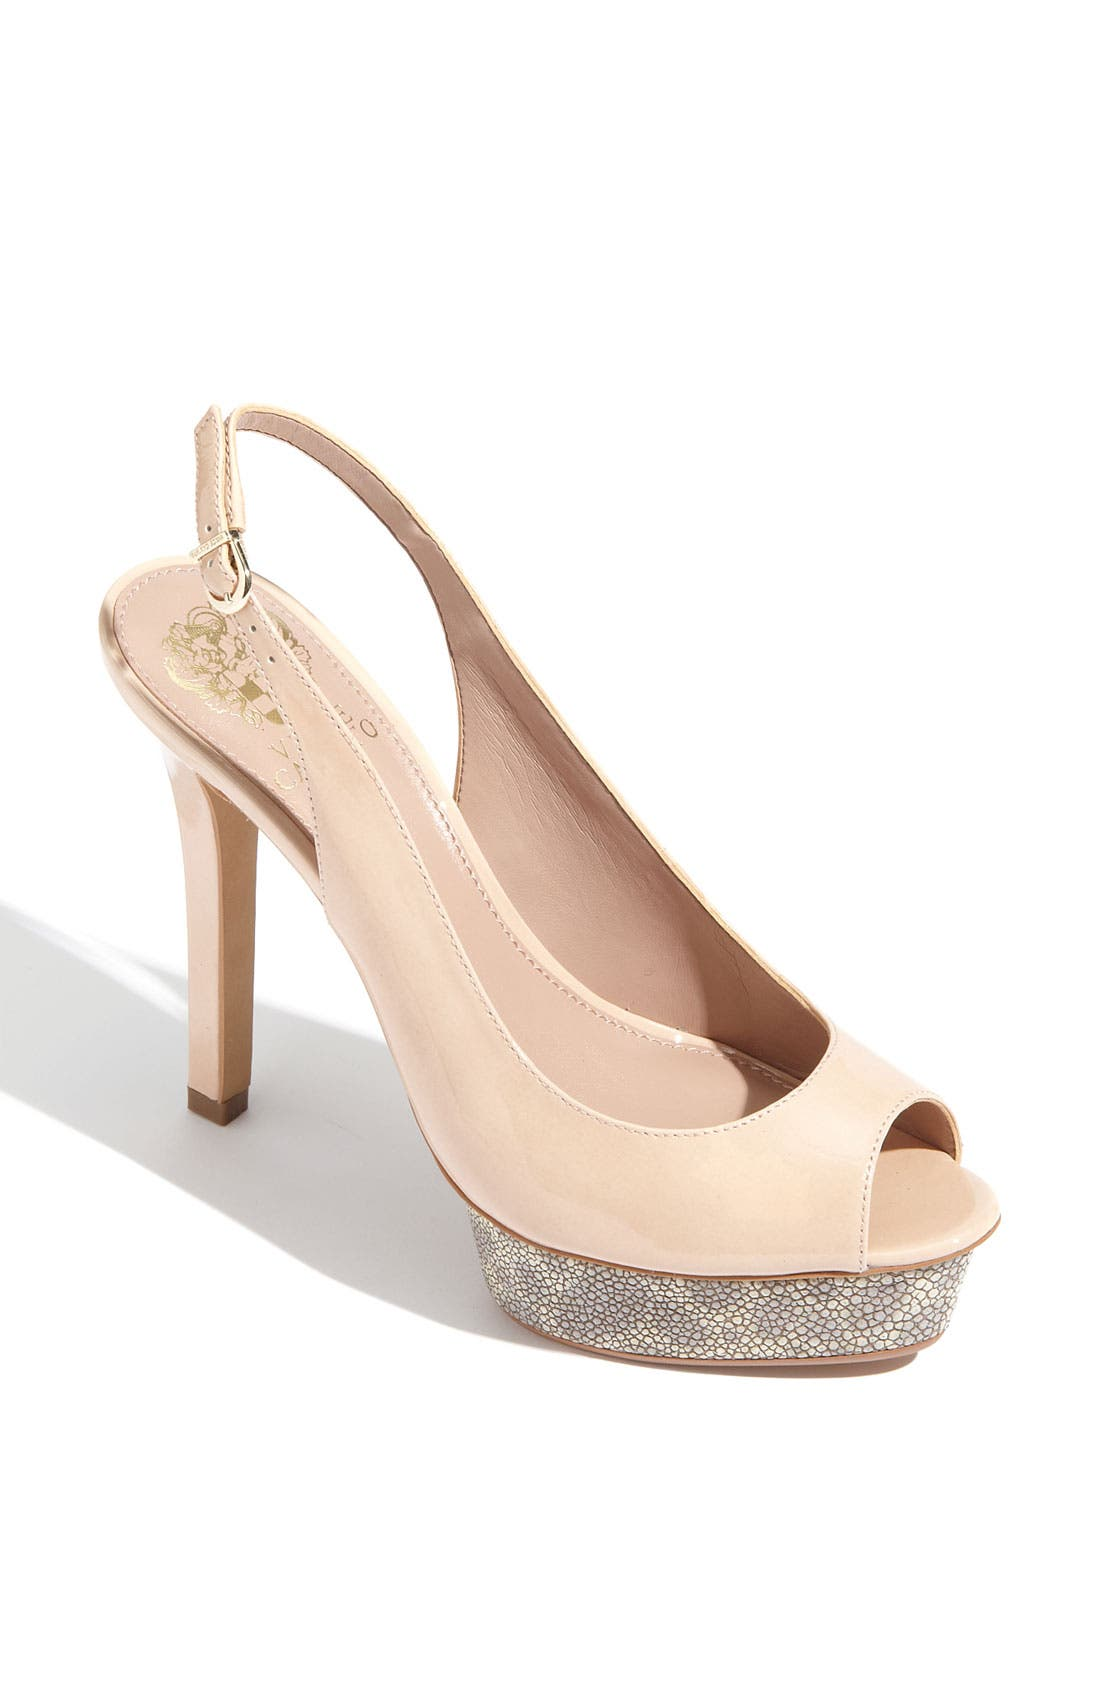 Main Image - Vince Camuto 'Leala' Pump (Exclusive)